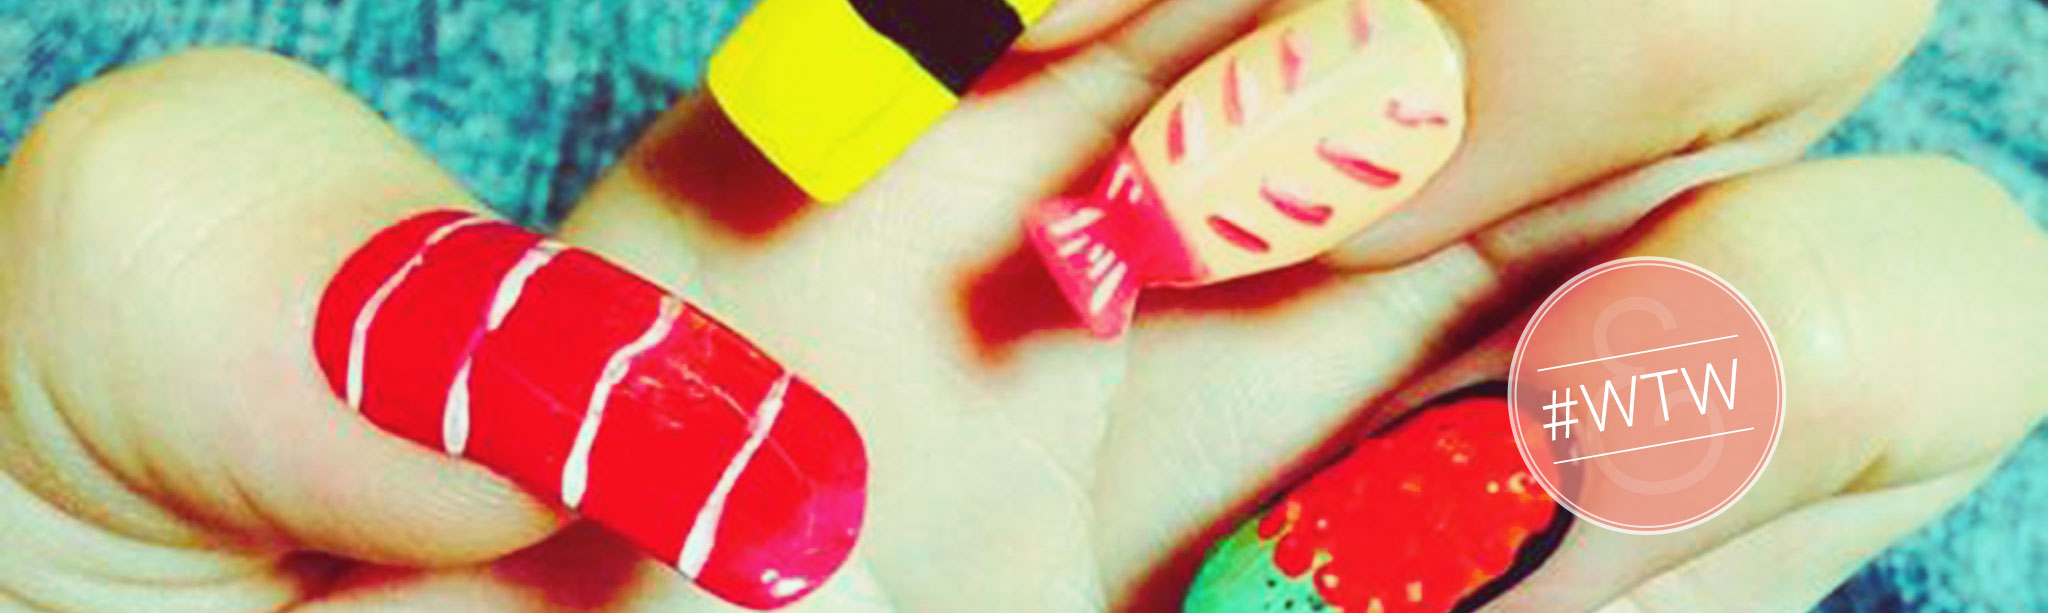 Wacky Trend Wednesday: Sushi Nails